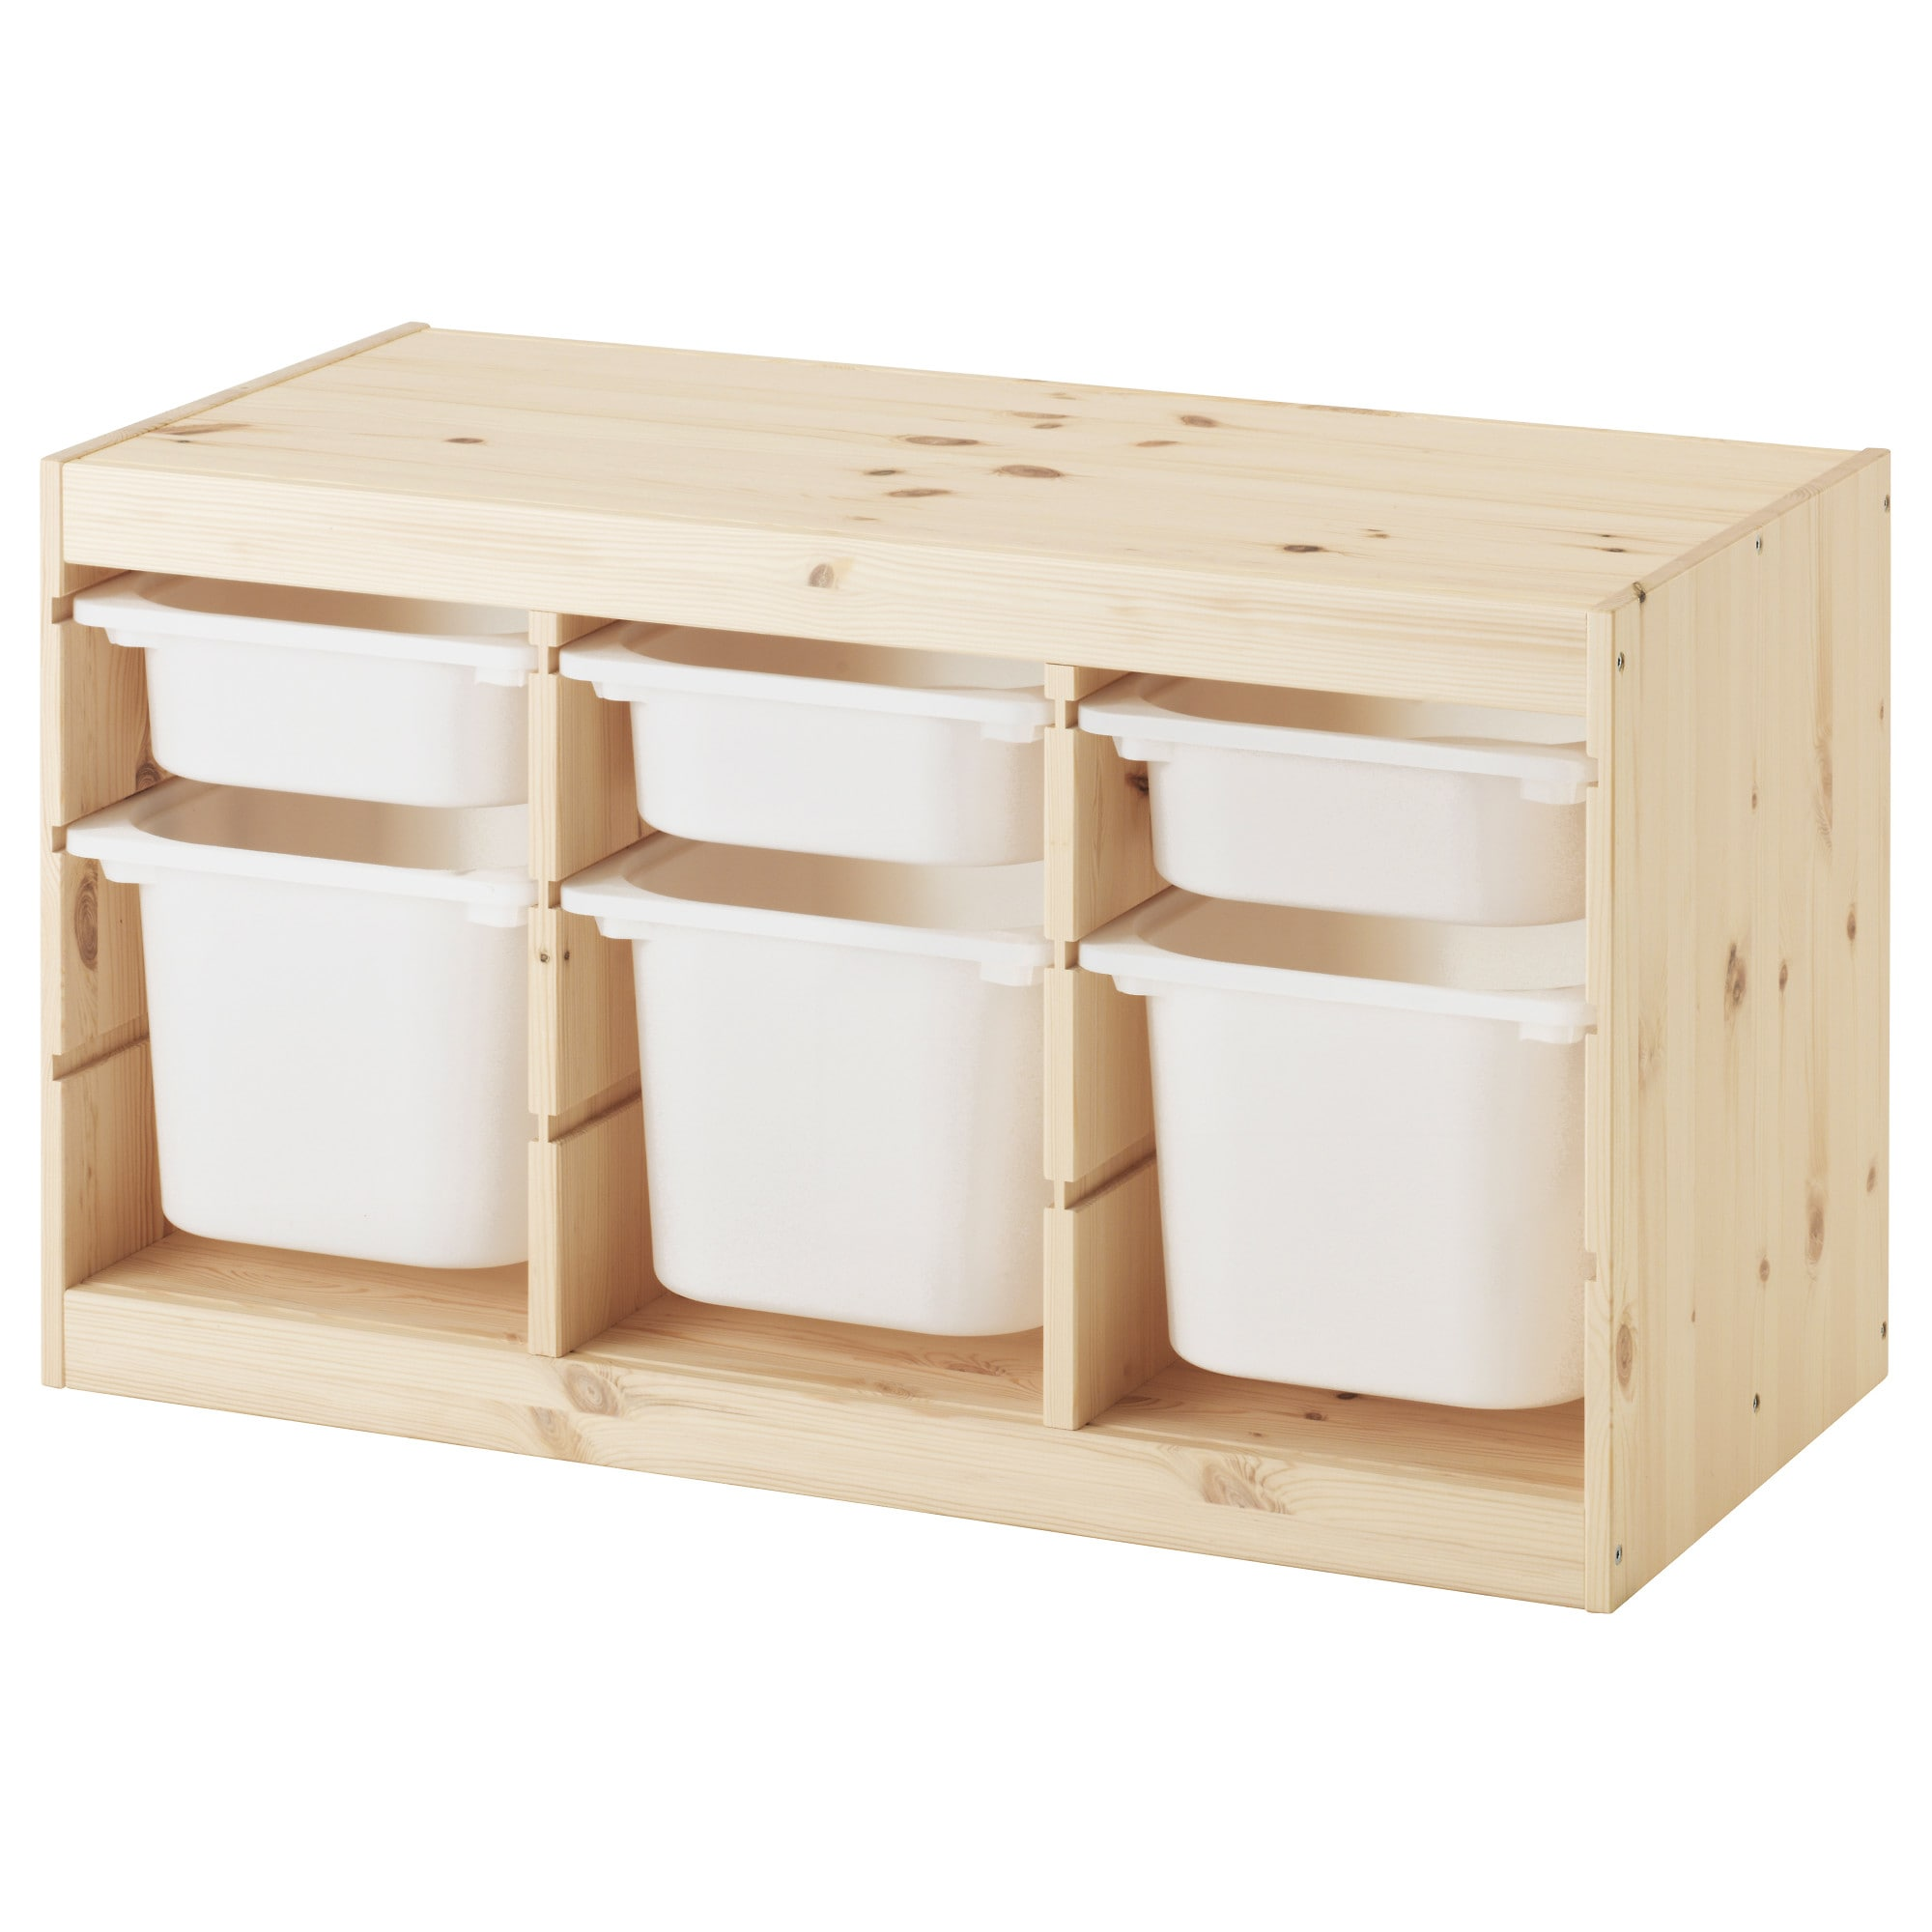 Trofast Opbergkast Ikea.Trofast Storage Combination With Boxes Pine Light White Stained